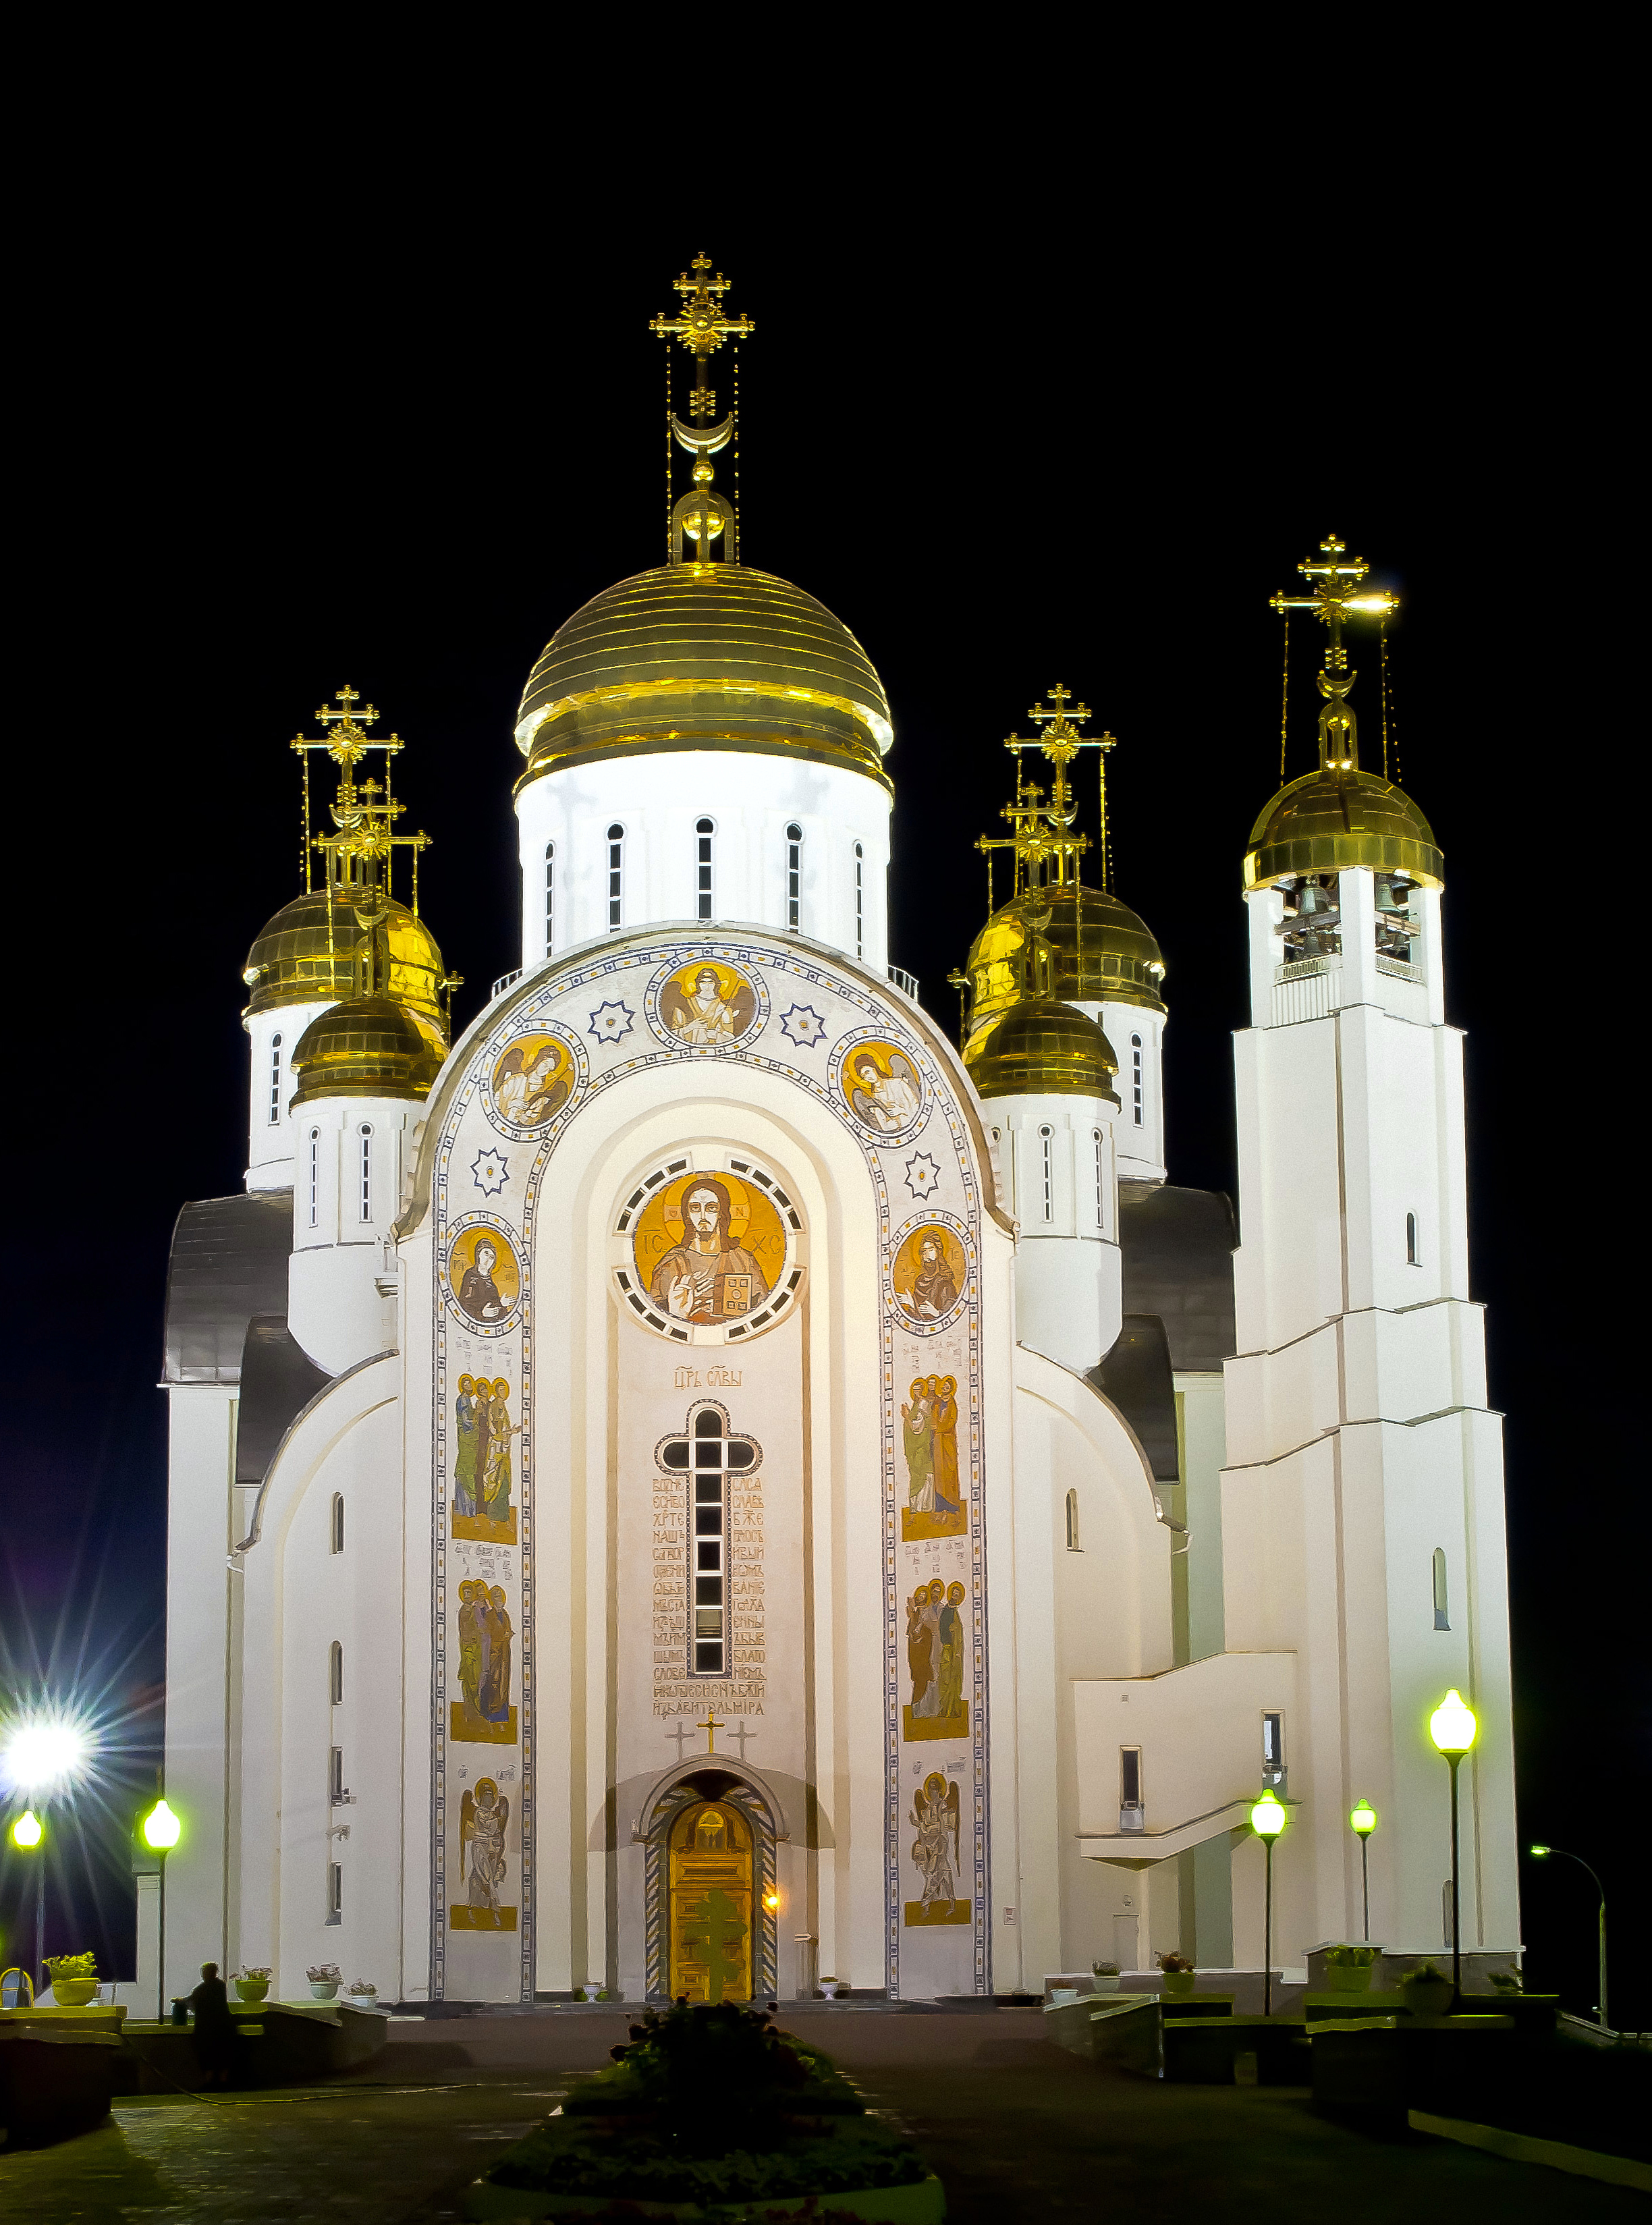 http://upload.wikimedia.org/wikipedia/commons/1/19/Church_of_the_Ascension_of_Christ_(Magnitogorsk)_12.jpg